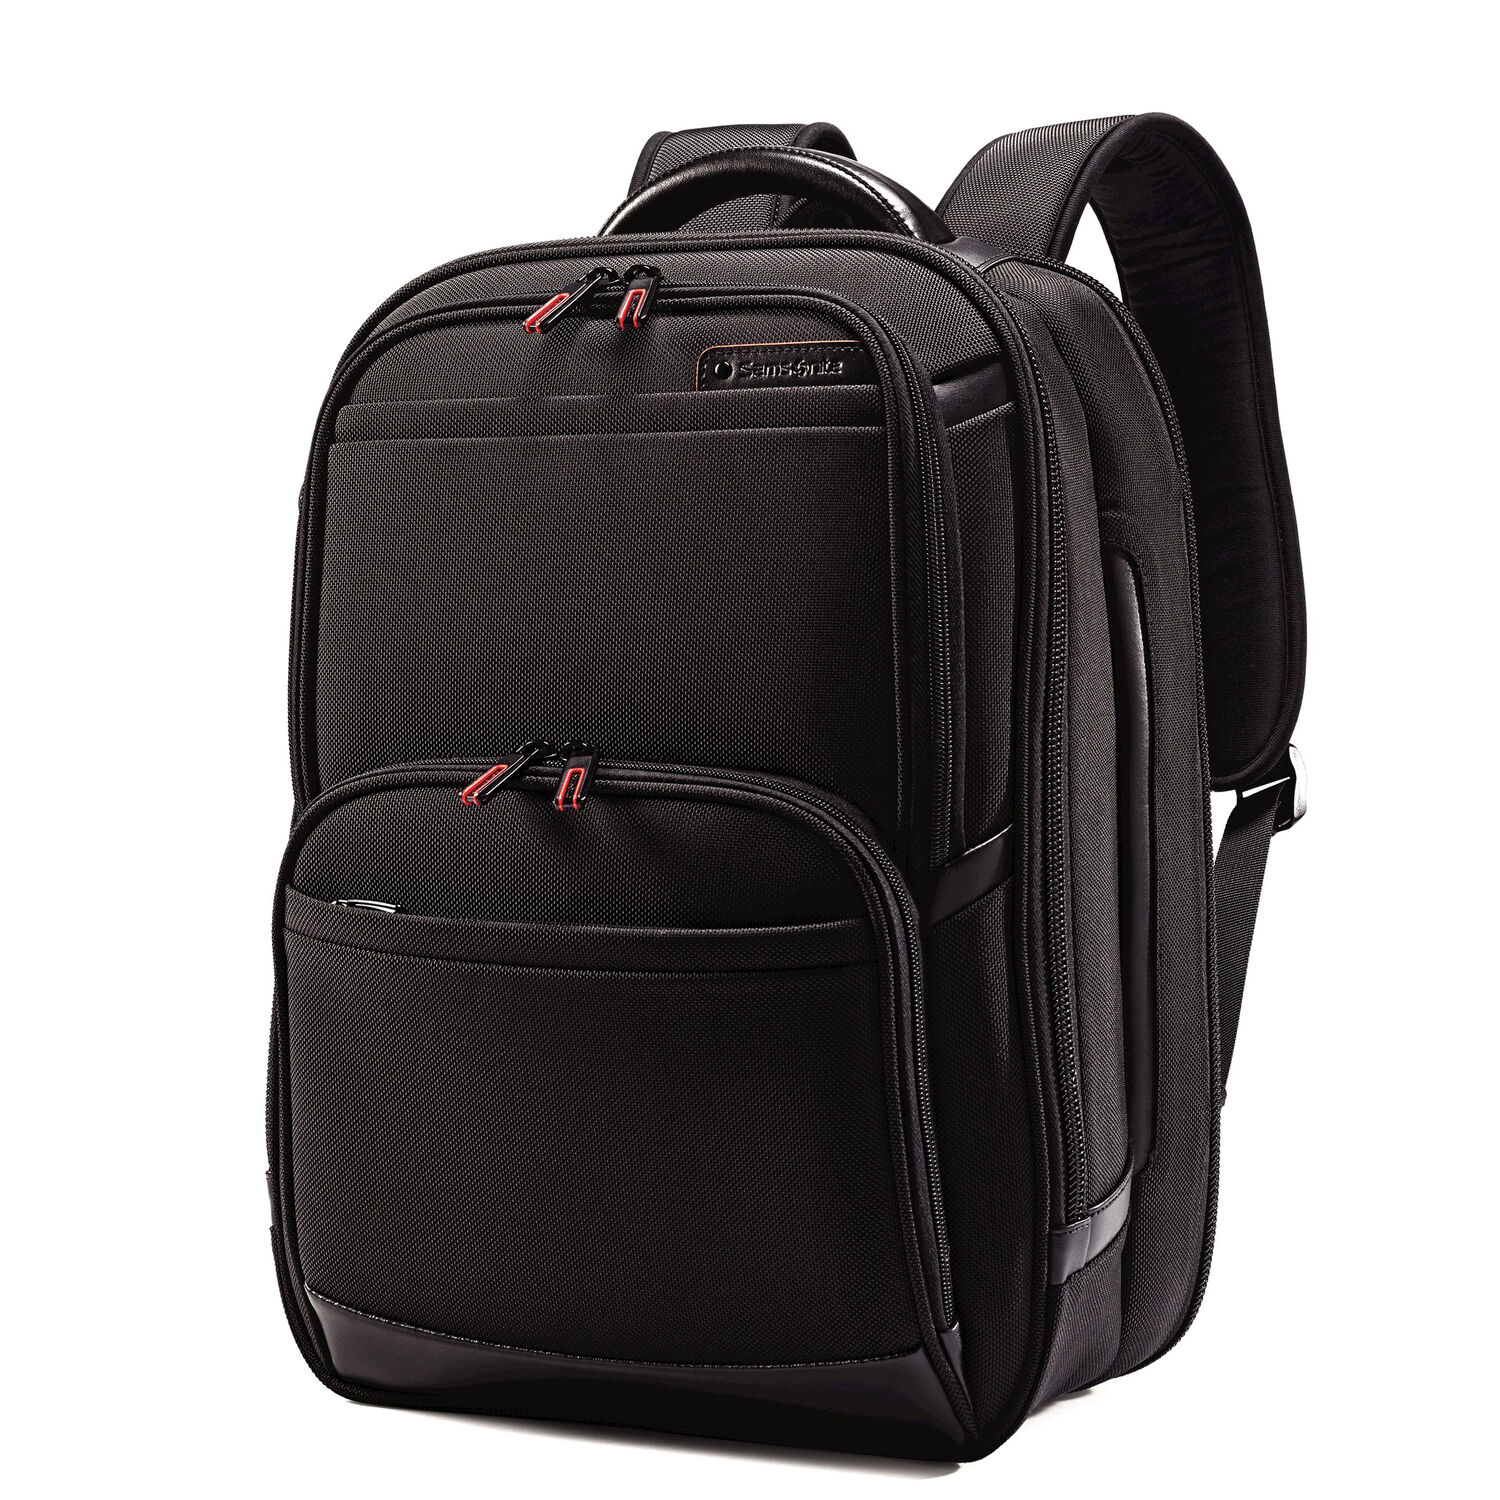 Samsonite Pro 4 DLX Perfect Fit Urban Laptop Backpack in the color Black. 8bb1a15962701